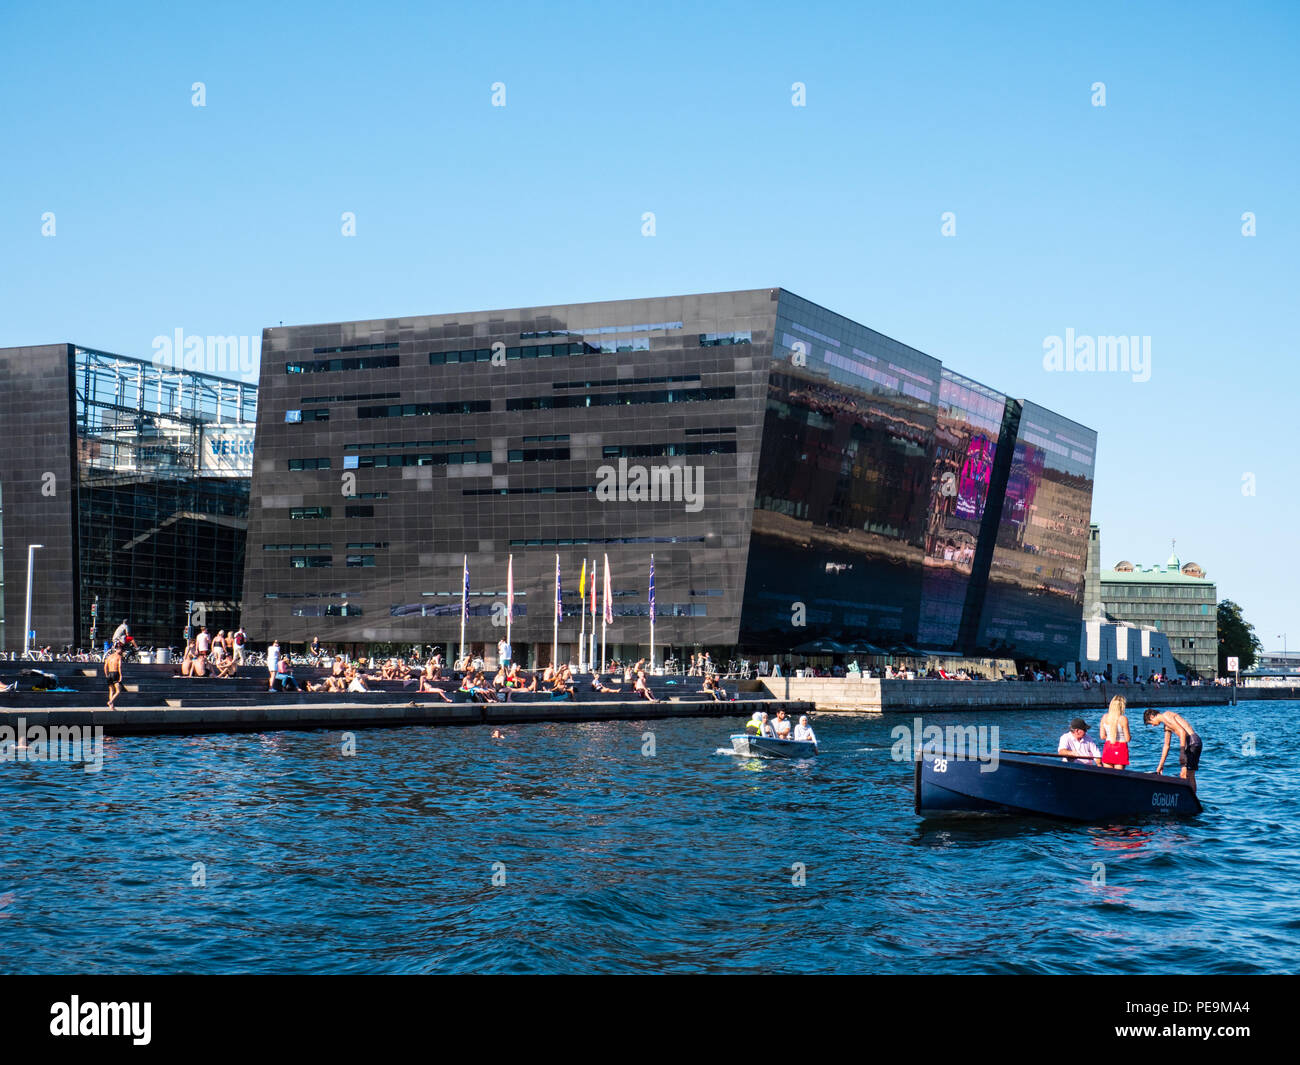 The Black Diamond - Royal Danish Library, Heatwave with people in Boats, Copenhagen, Zealand, Denmark, Europe. Stock Photo